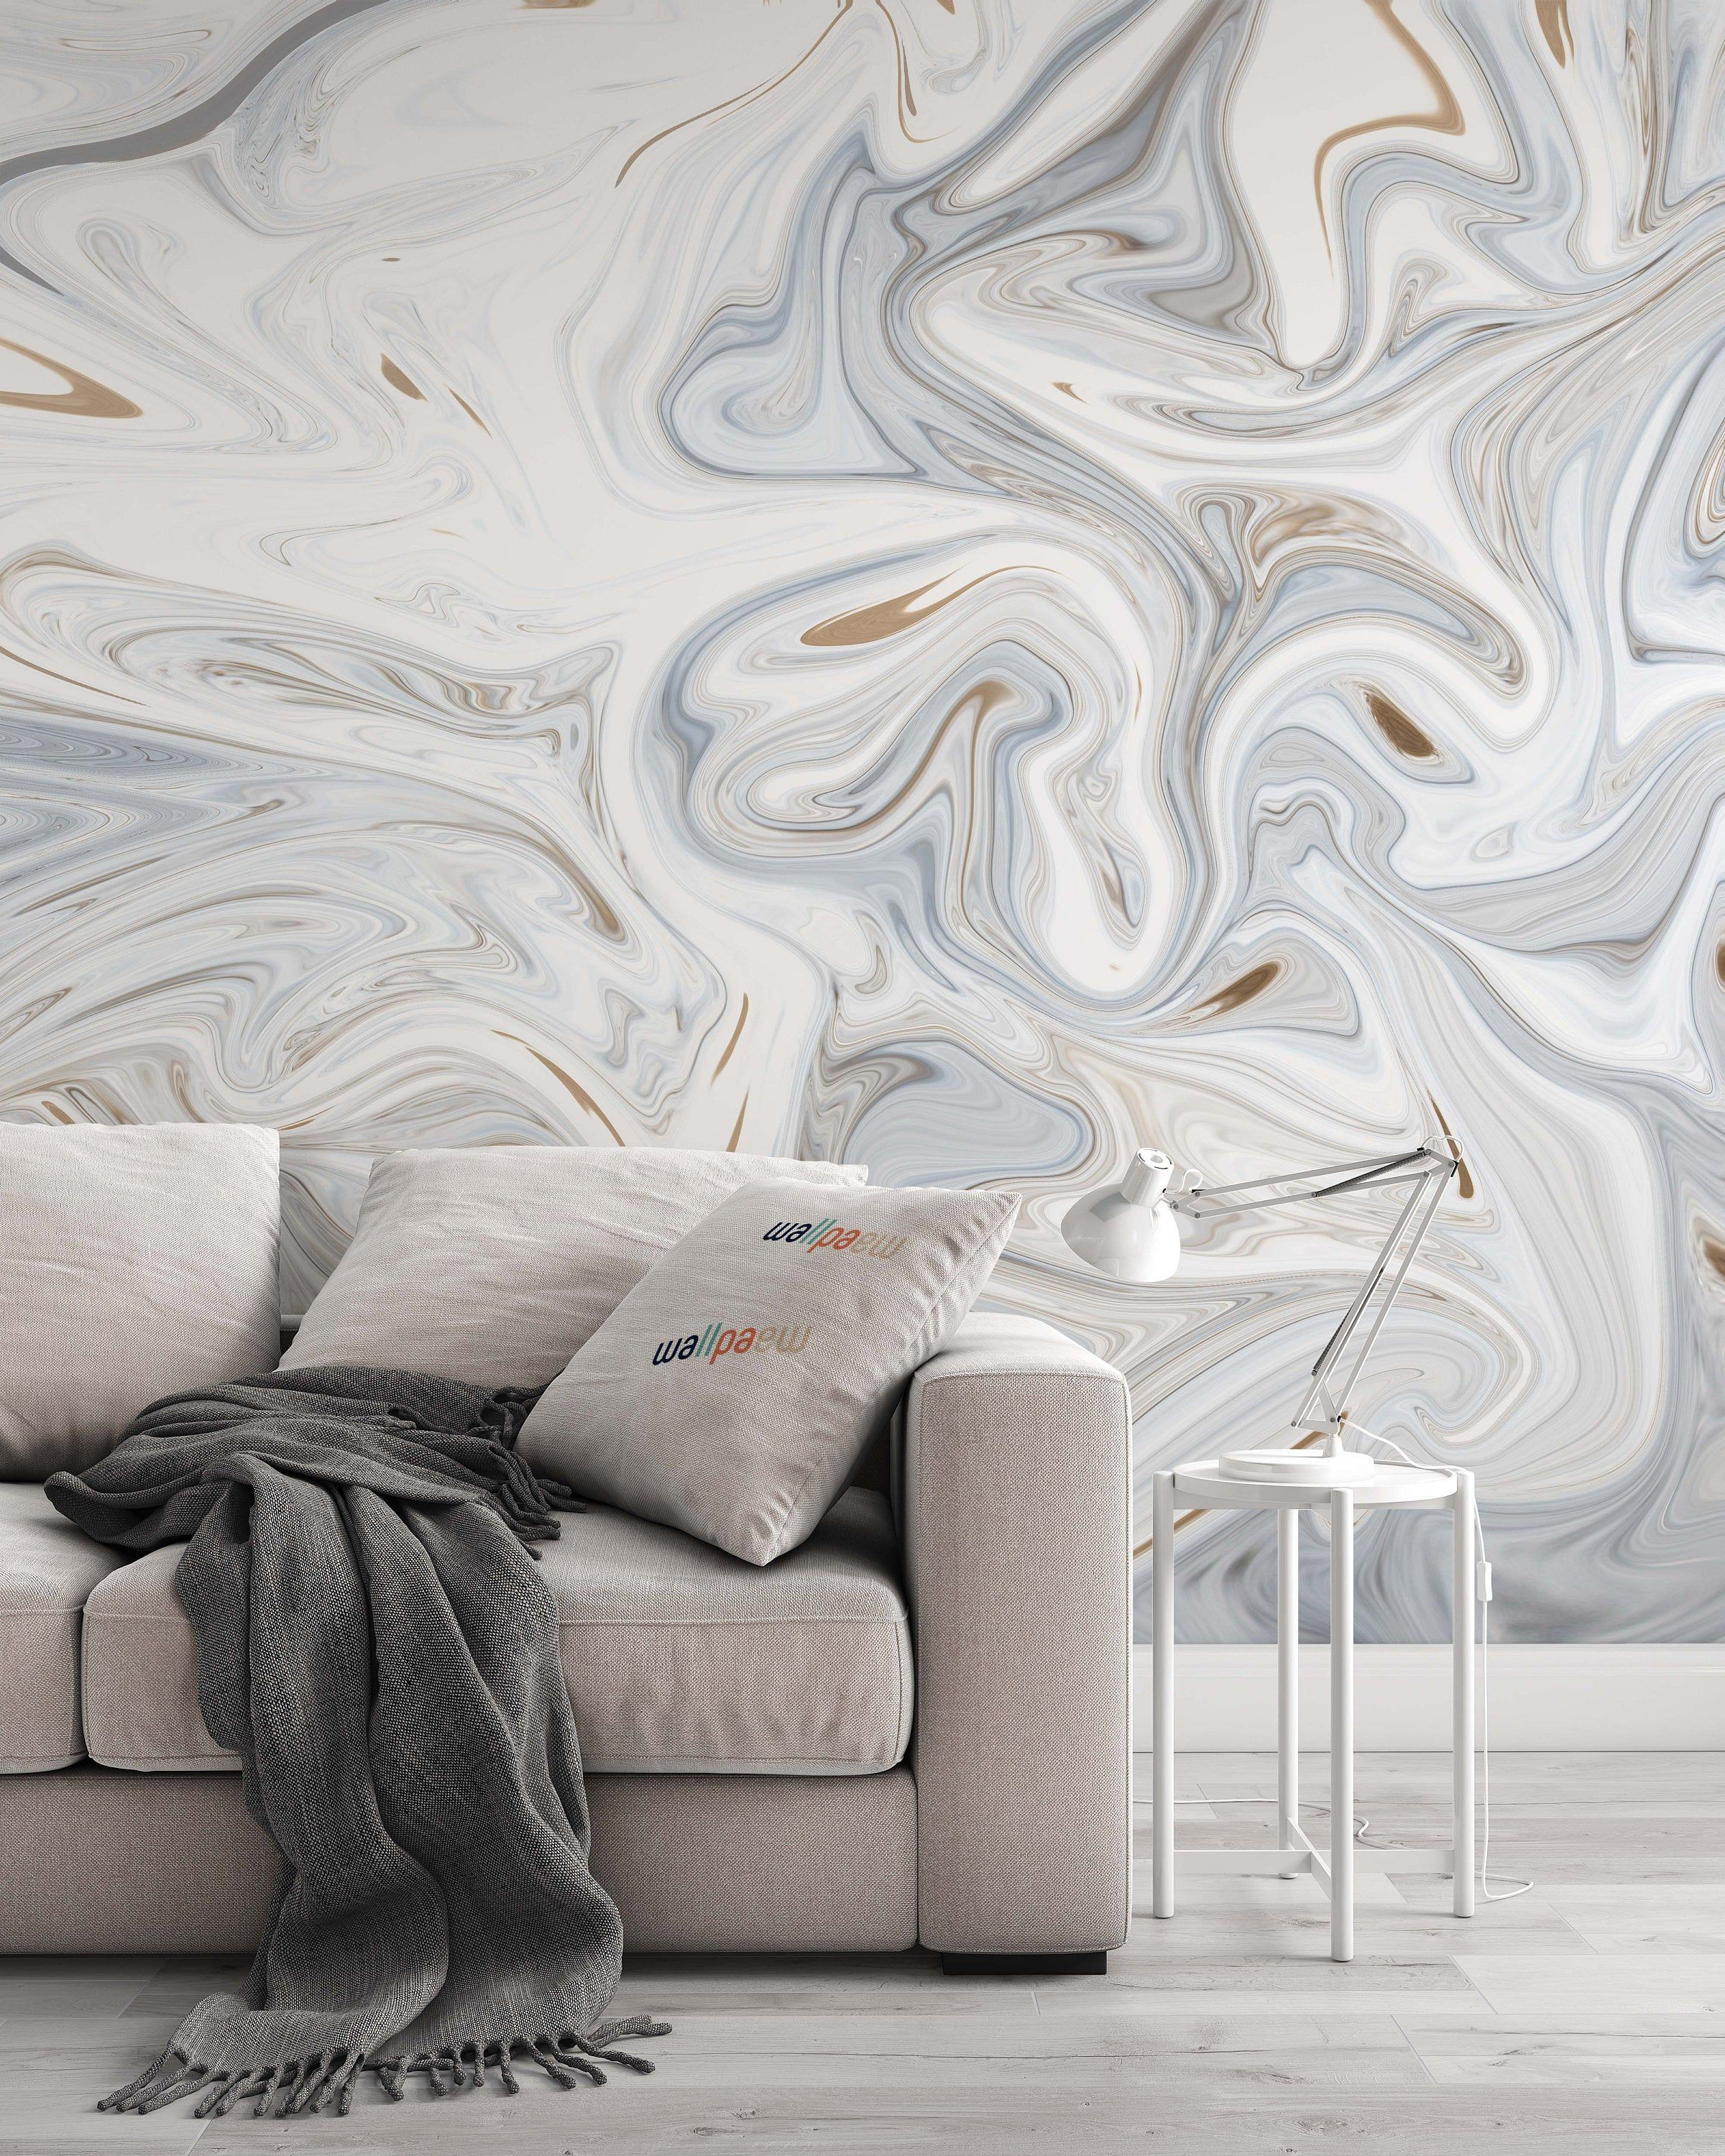 Abstract Painting White And Gray Background Modern Wallpaper Etsy Bedroom Murals Modern Wallpaper Home Decor Wall Art